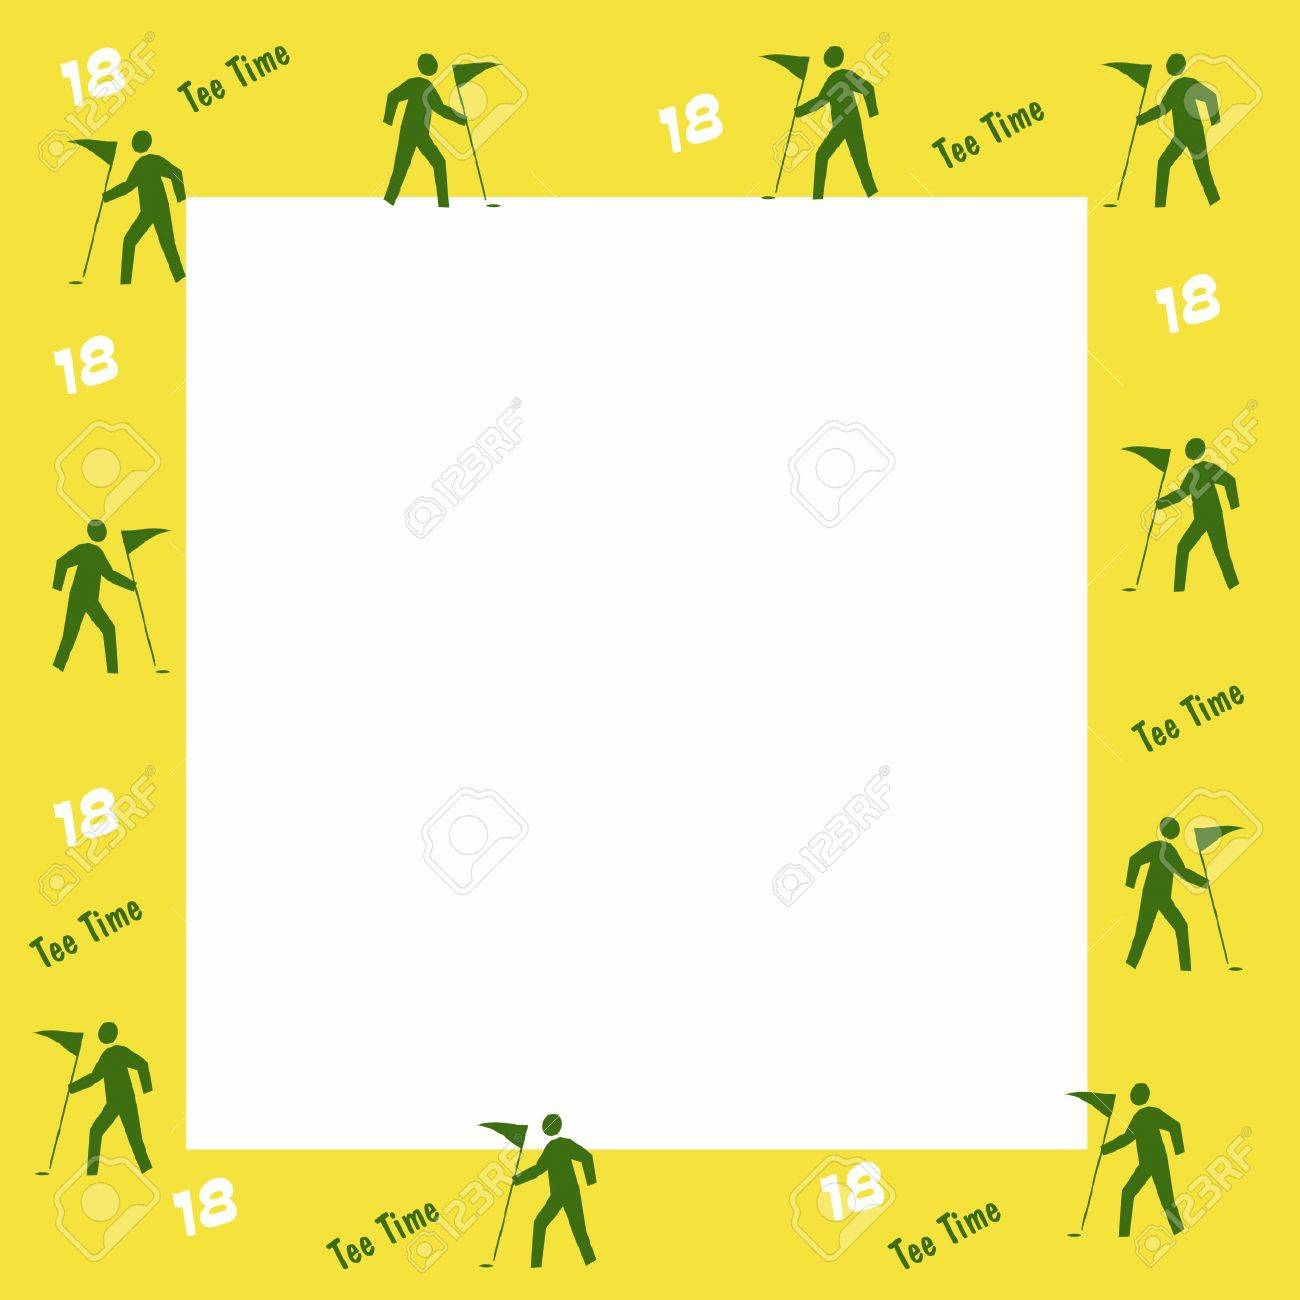 Green Golf Flag And Yellow Frame Scrapbook Illustration Stock Photo ...